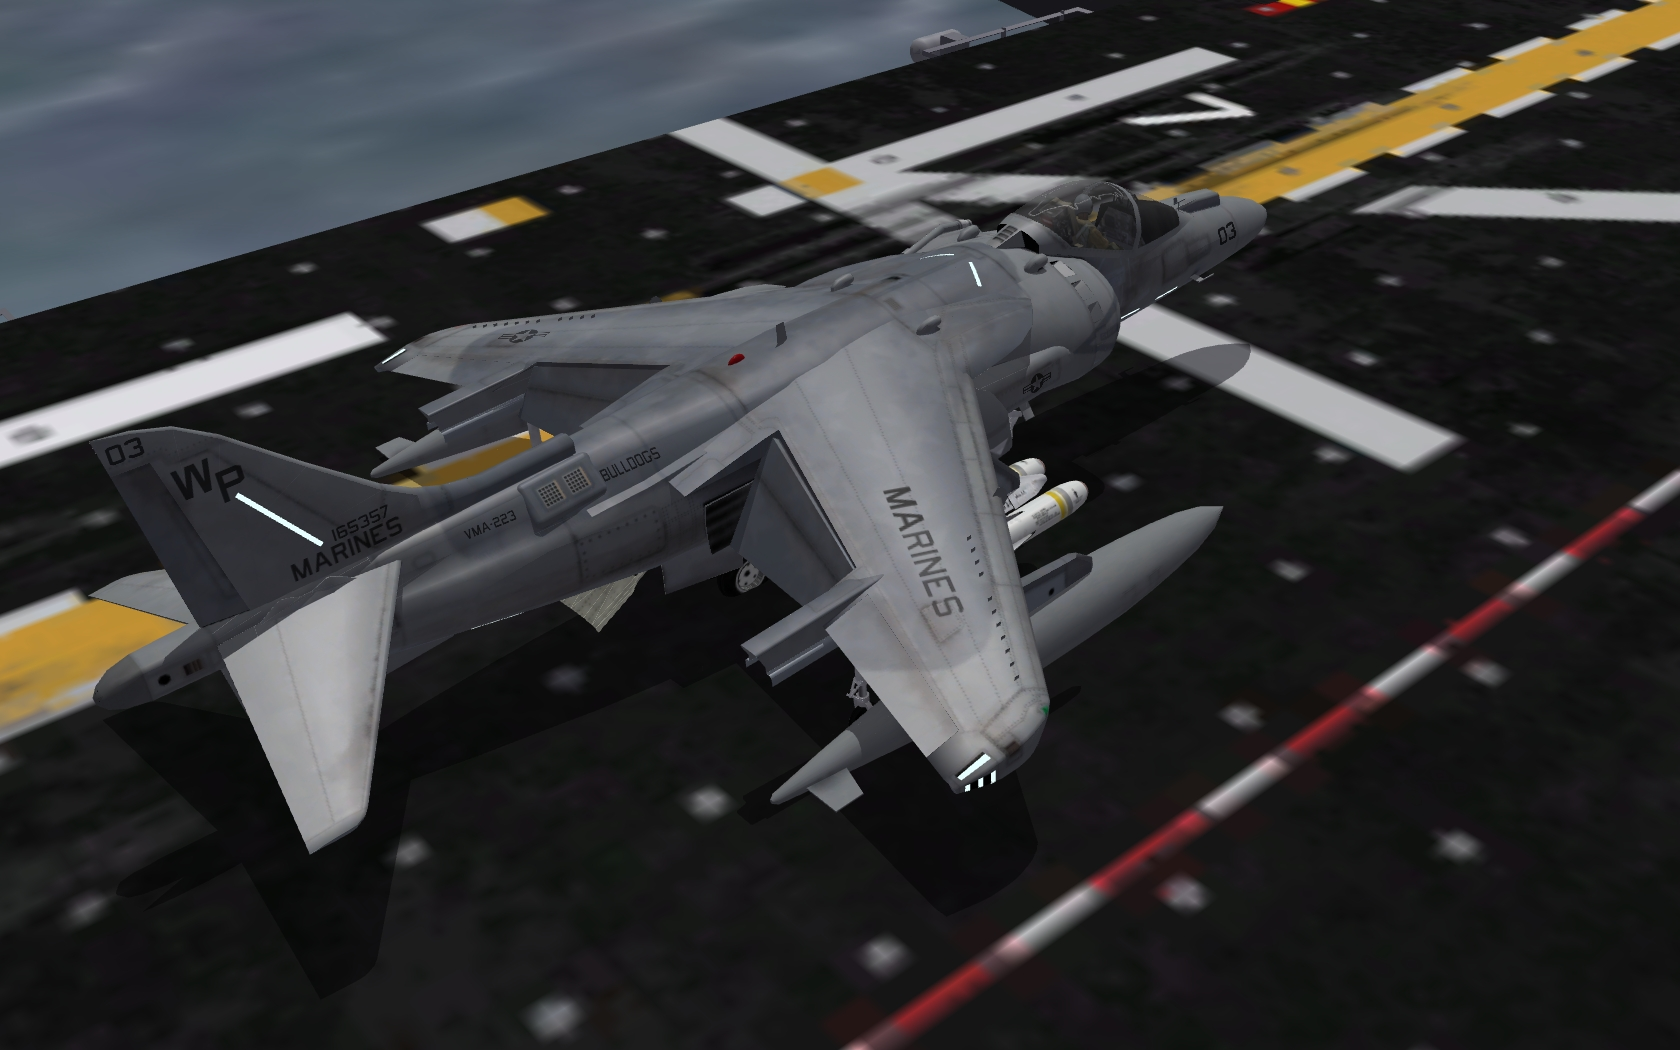 Aircraft Aboard The USS Bataan